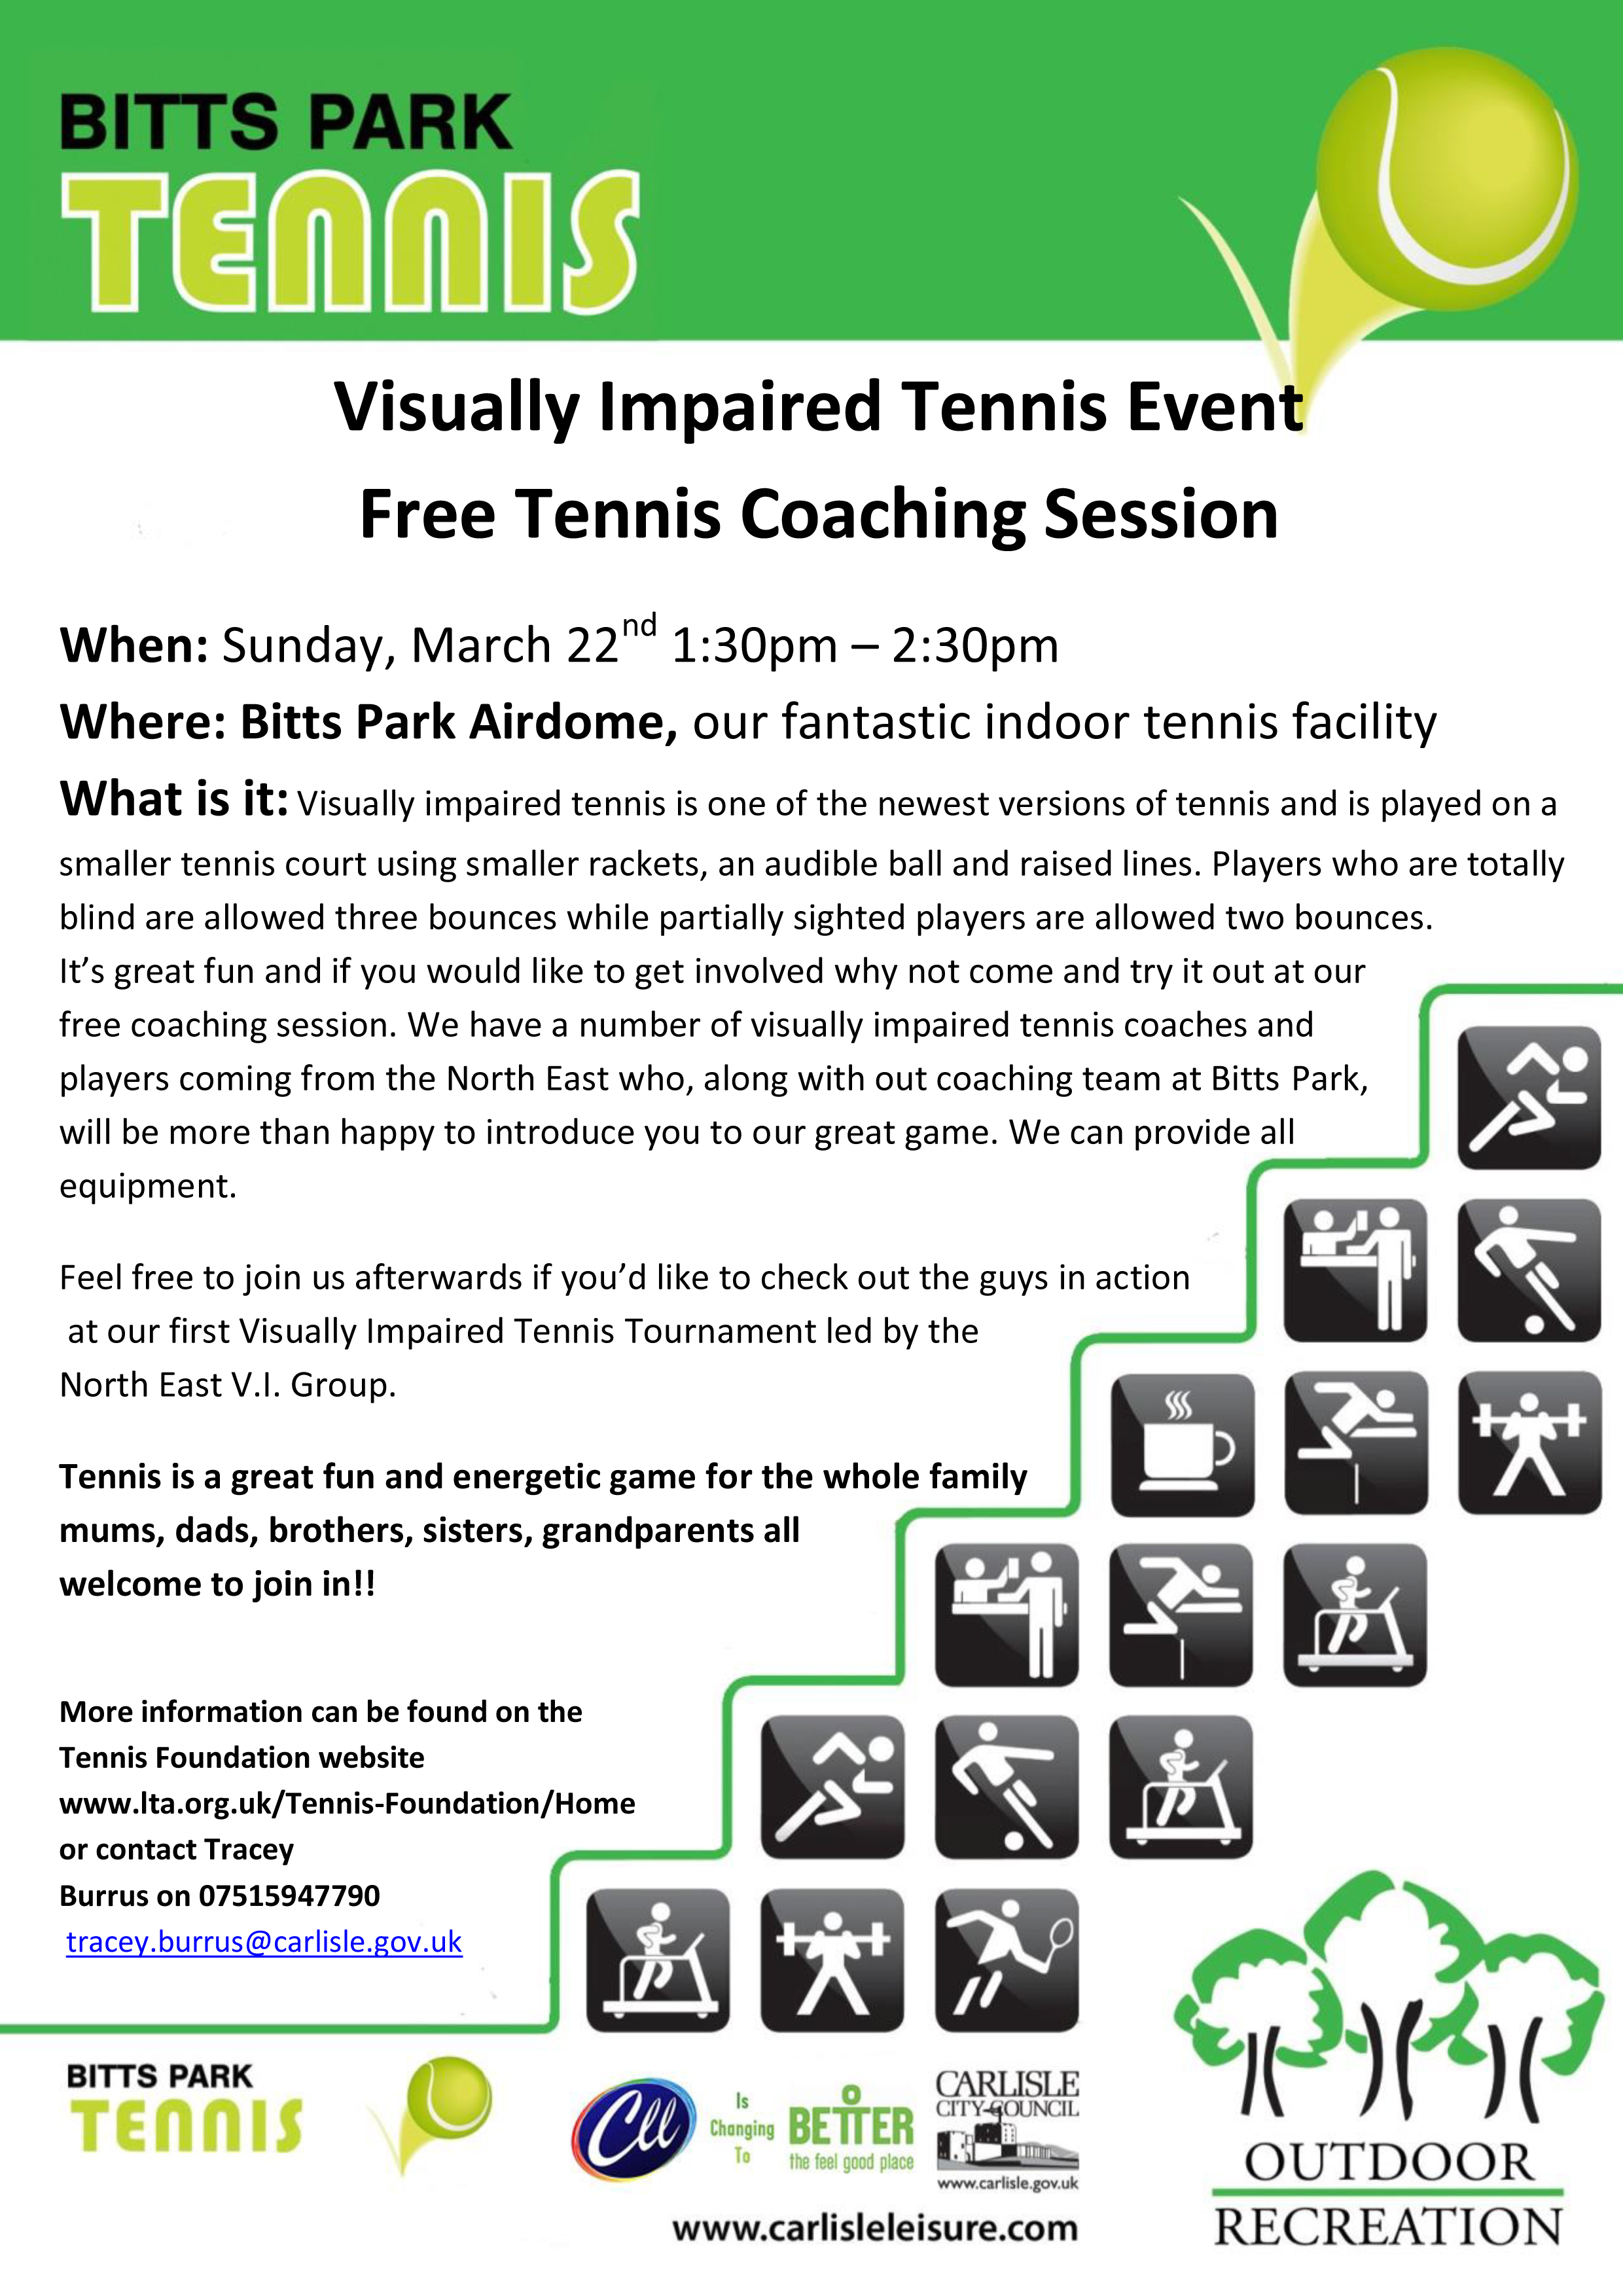 Tennis_A4_Poster_Visual_impairment_session_2.jpg